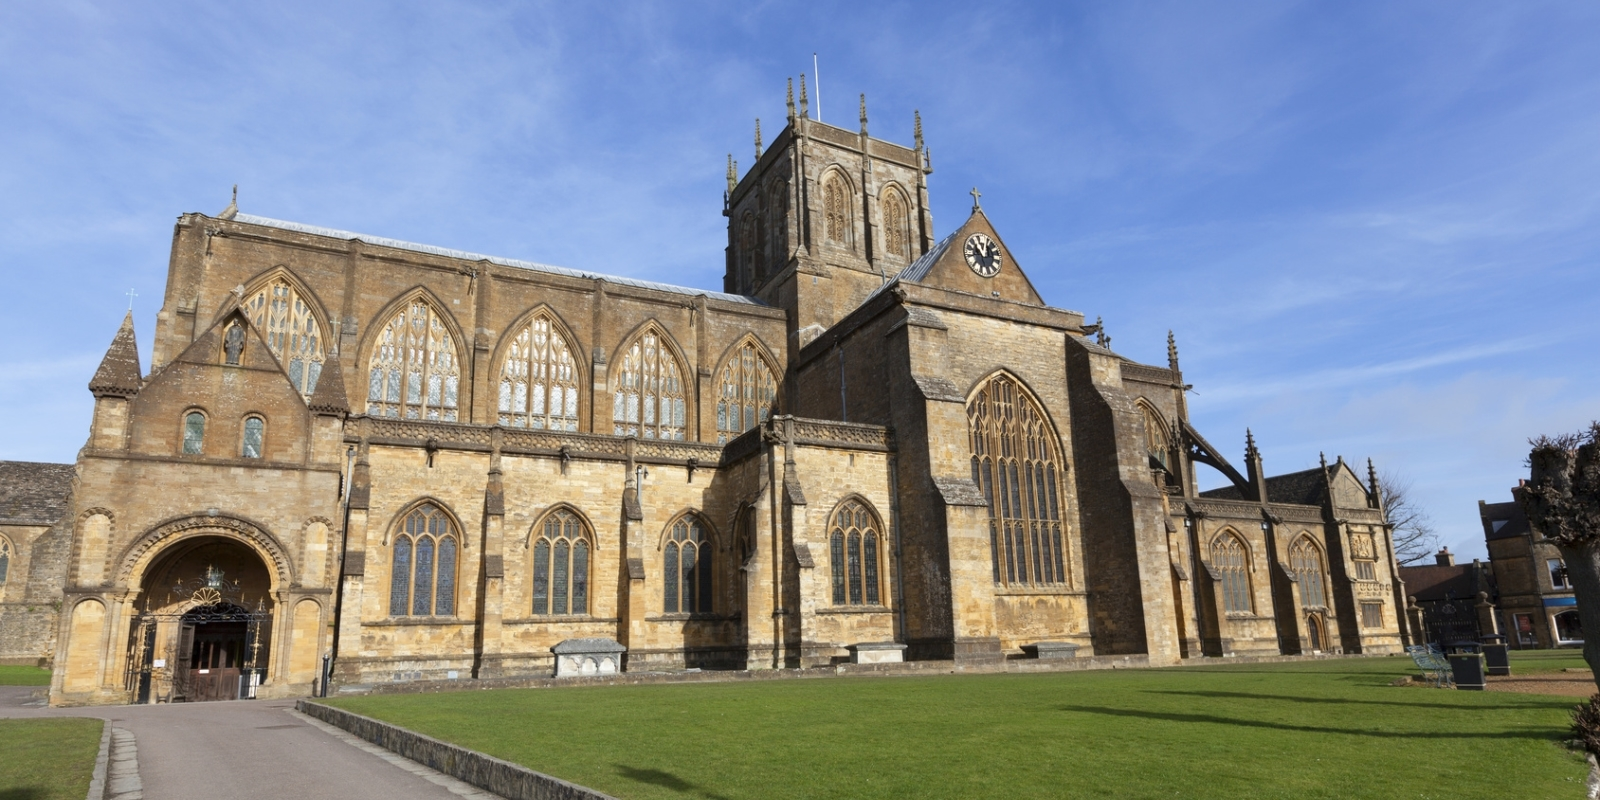 Sherborne with its Abbey and two castles is only half an hour away